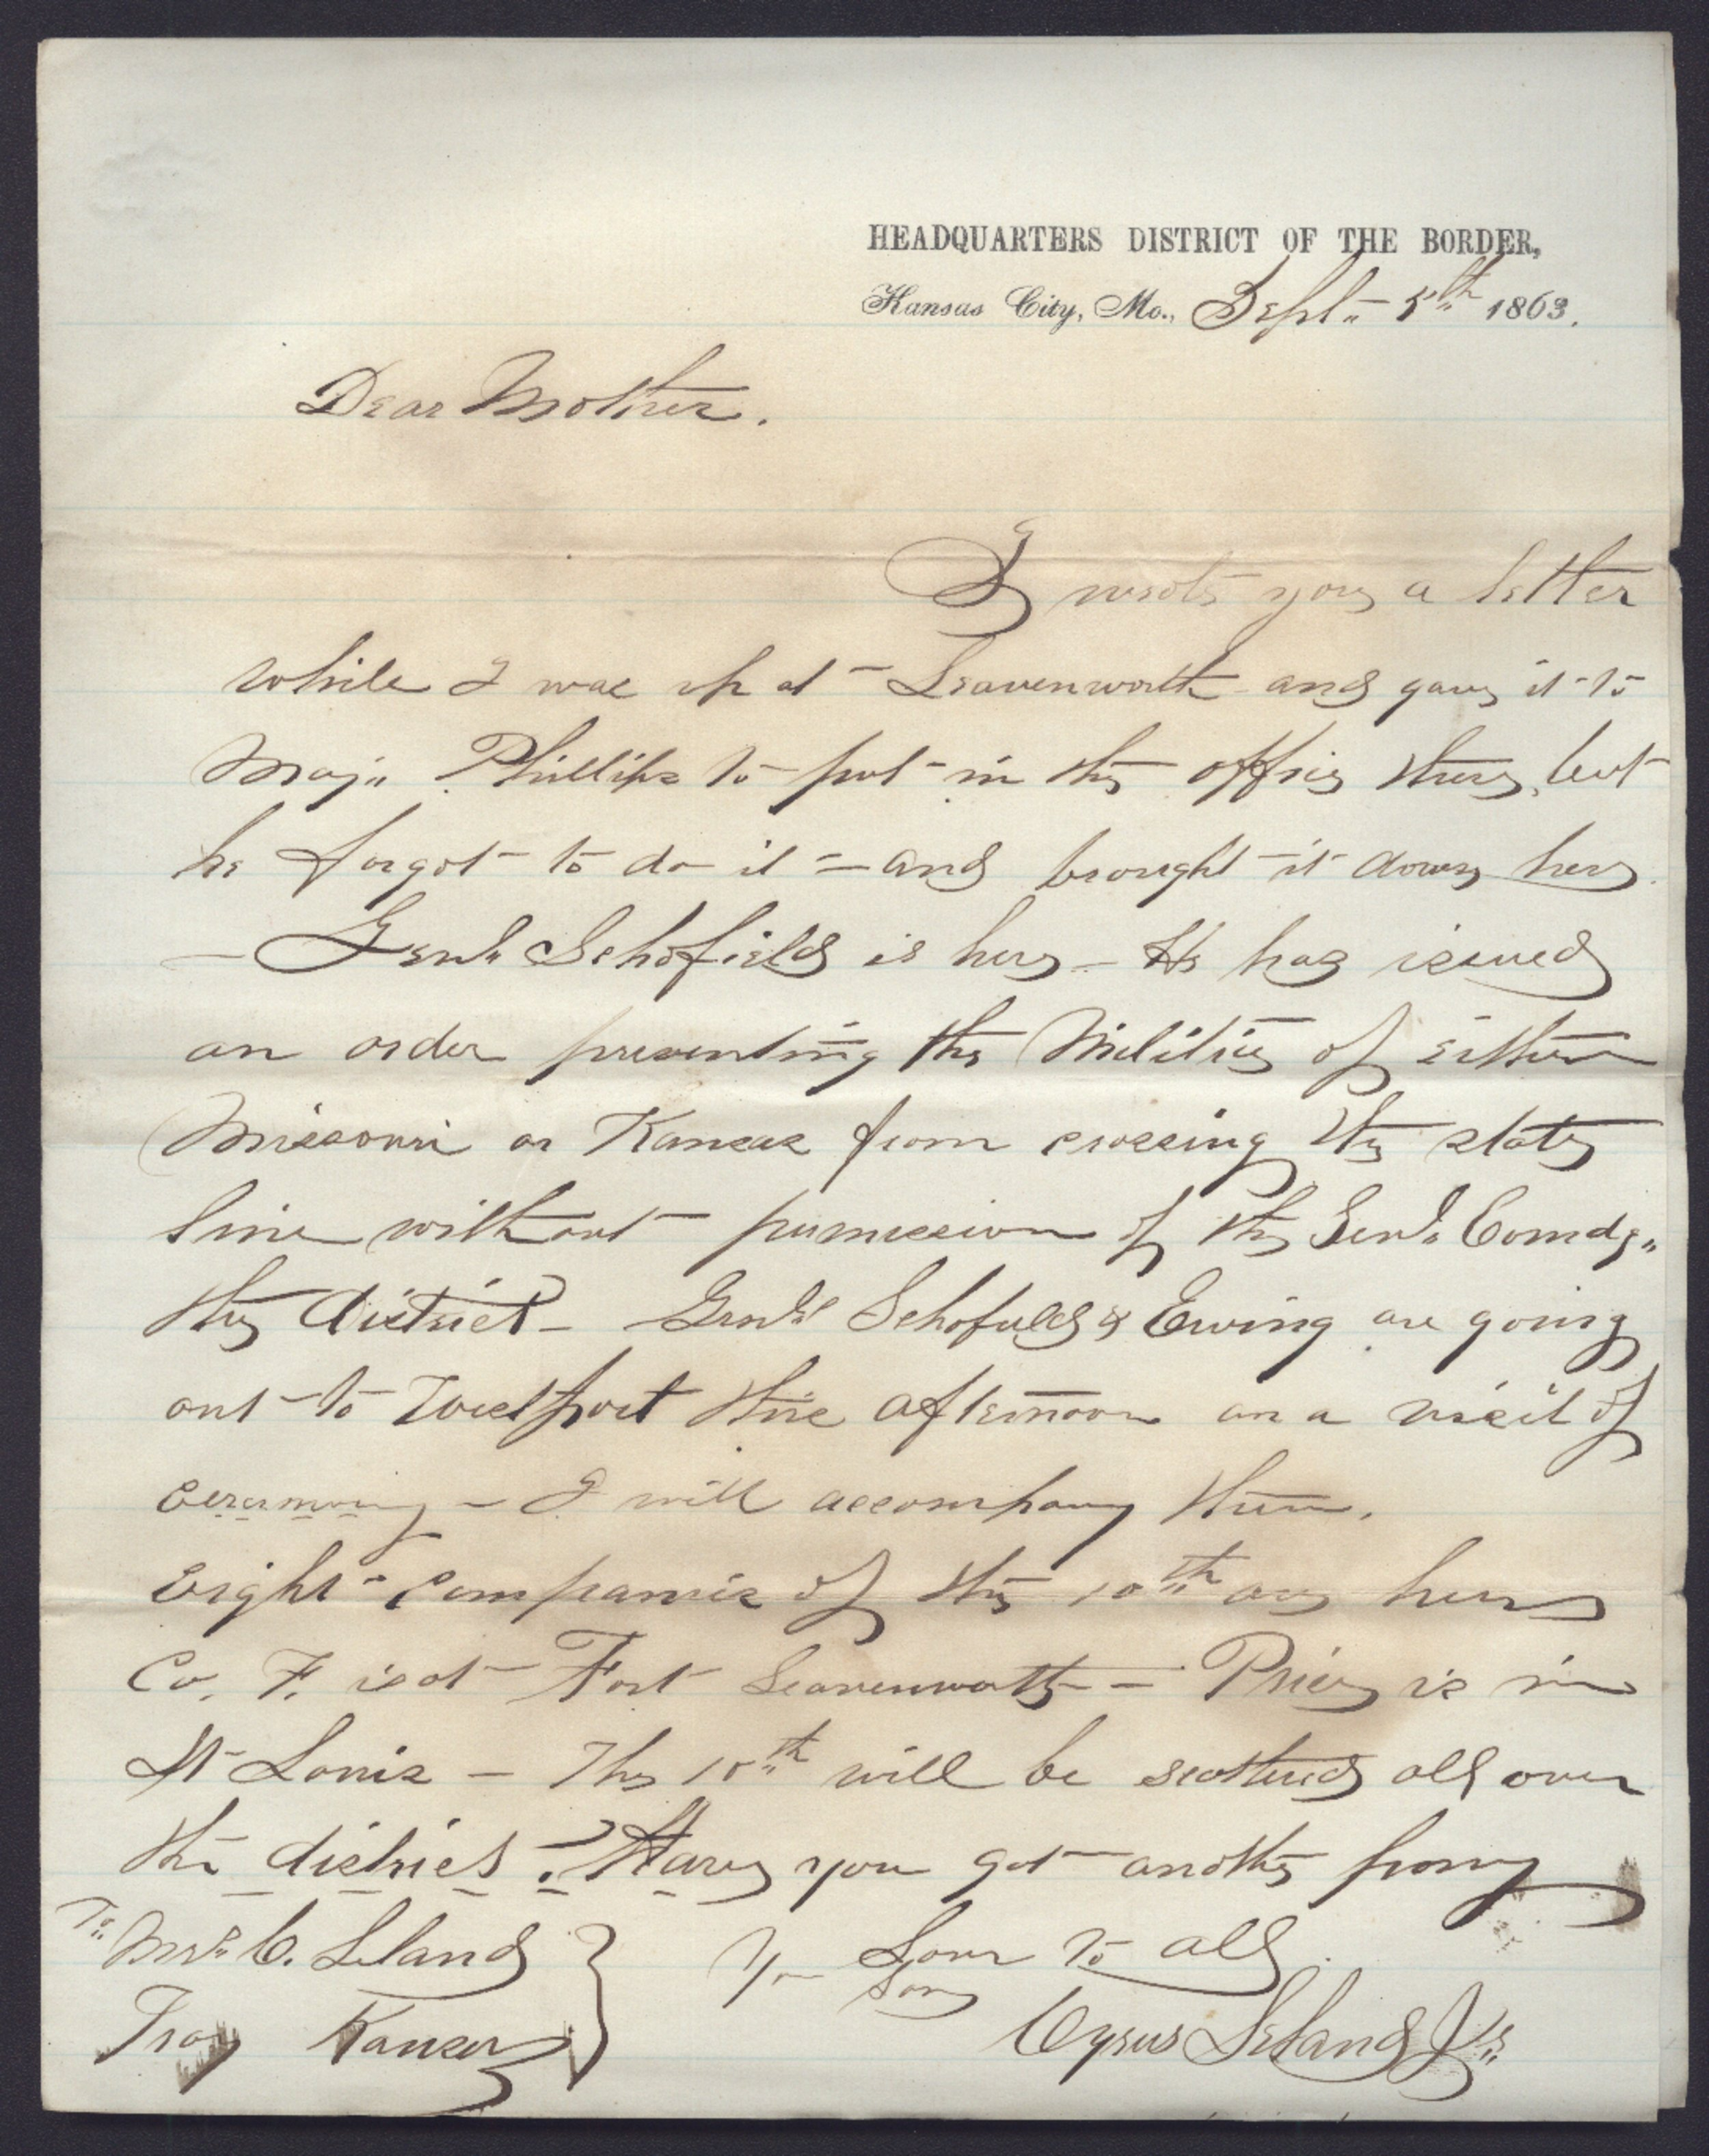 Cyrus Leland, Jr. to Mother and other family members - 9